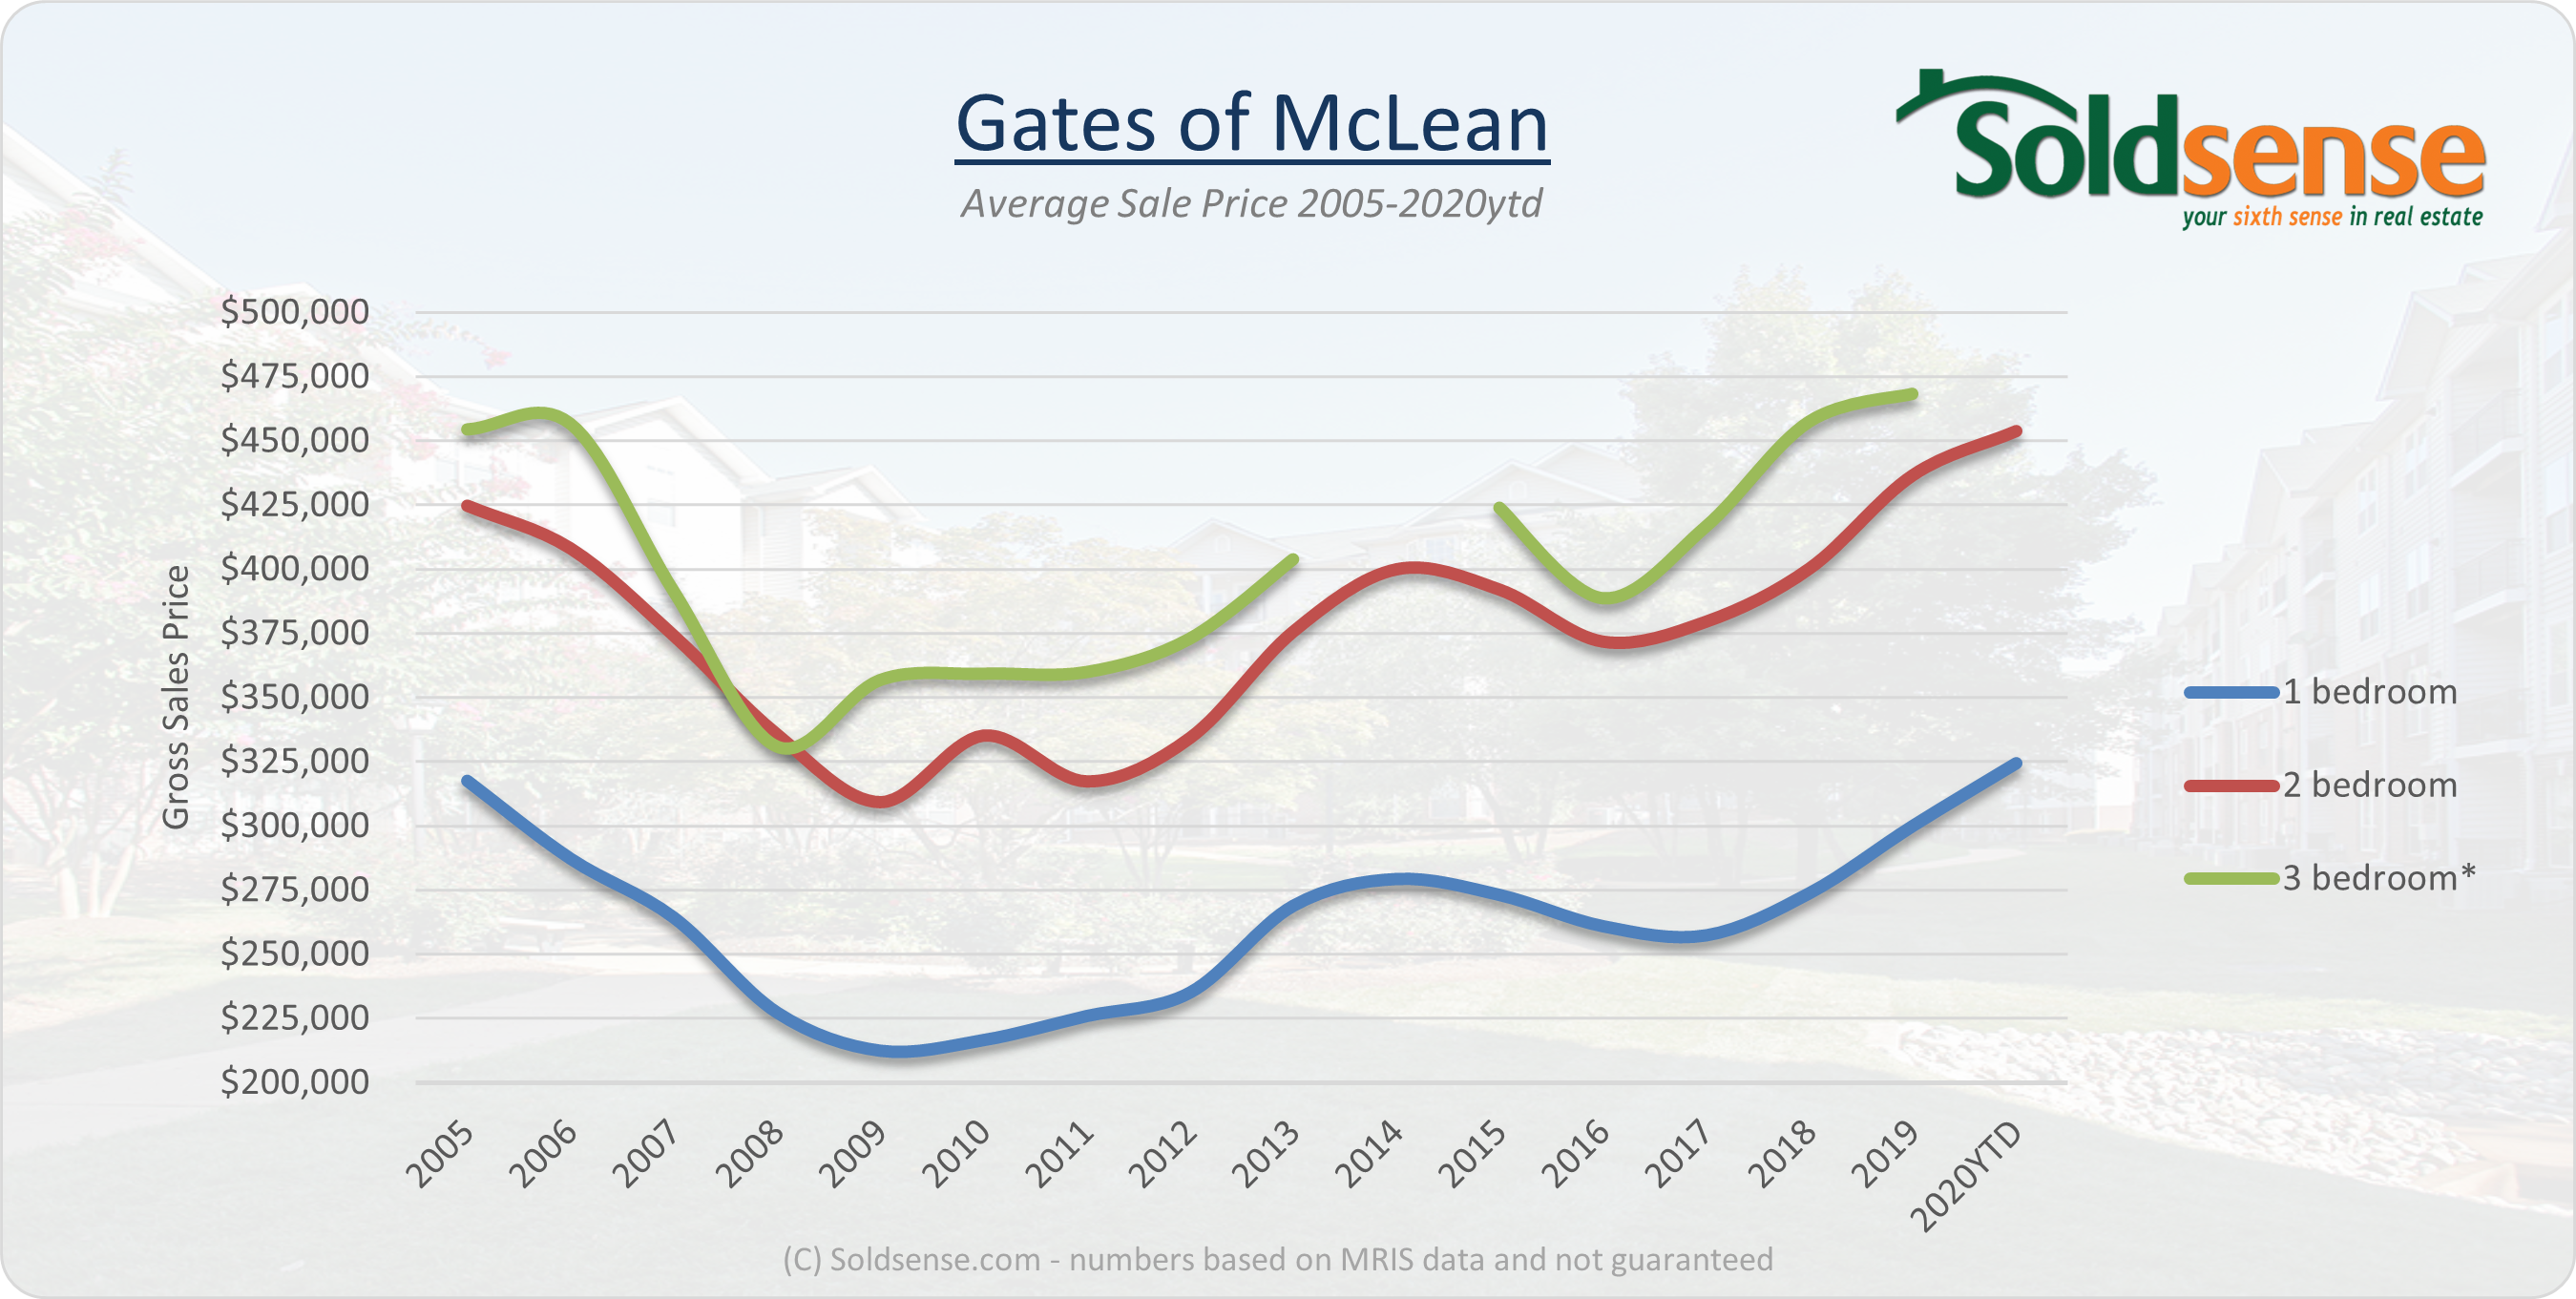 Graph showing sales prices over time at the Gates of Mclean